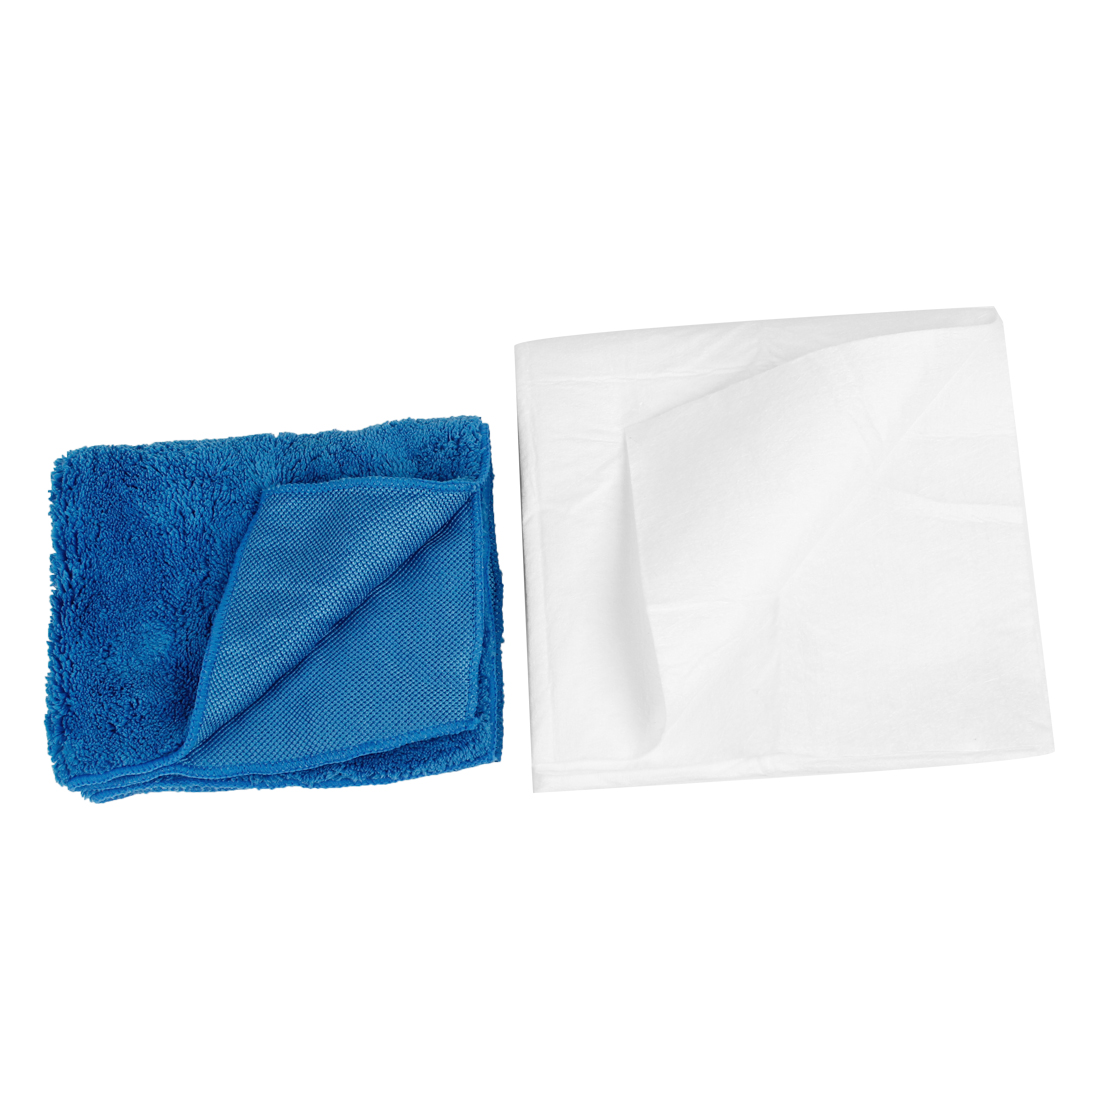 Car Automobile Interior Blue White Rectangle Washing Cleaning Towel Cloth 2 in 1